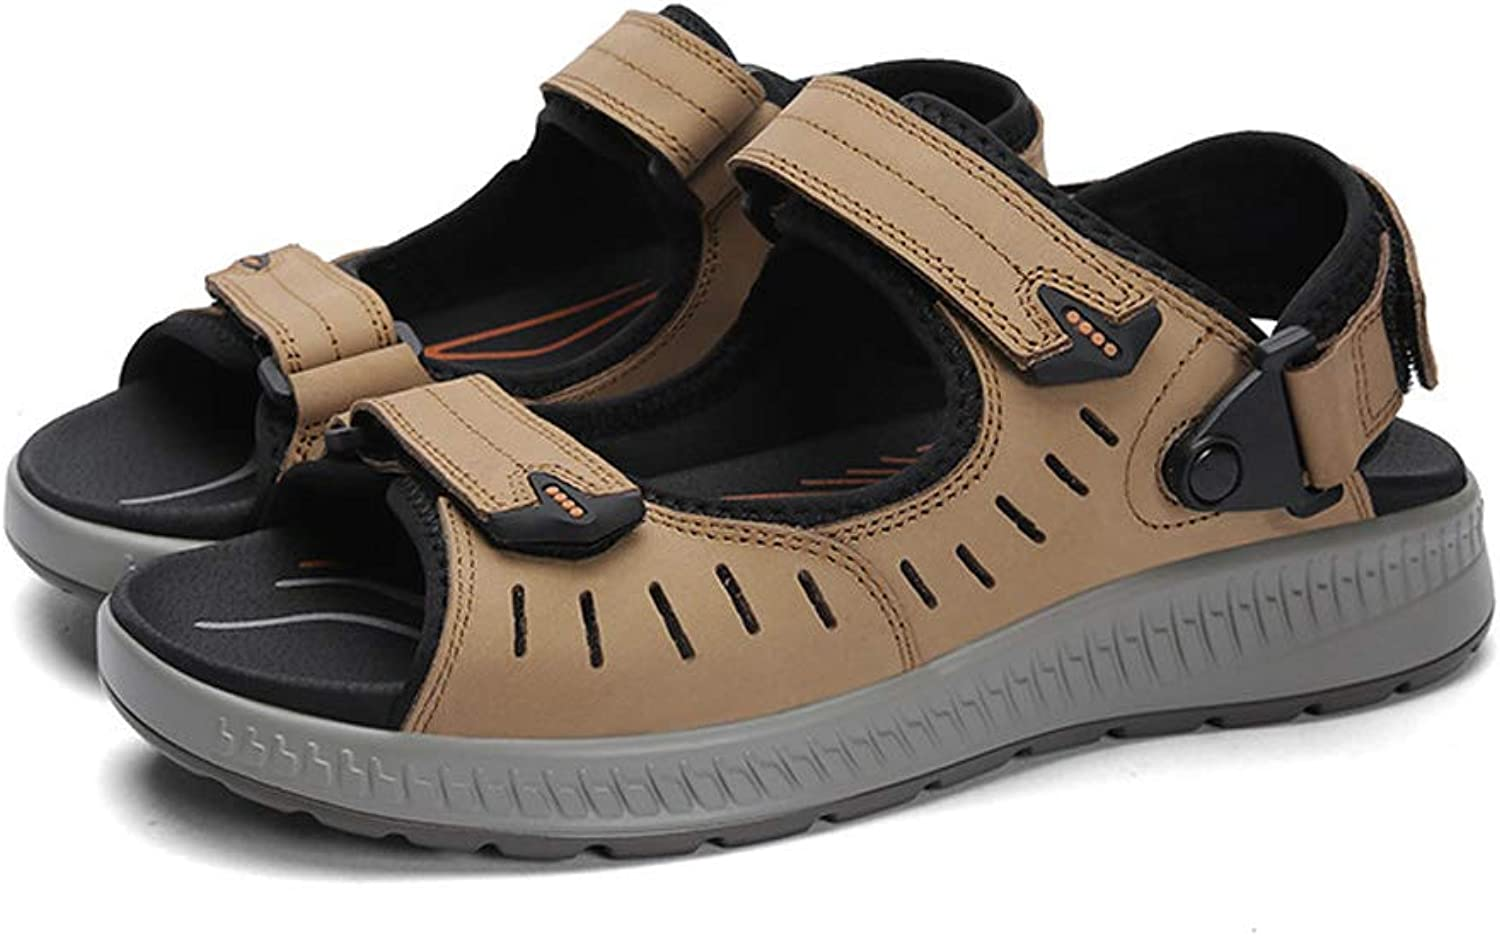 Men's Sports Large Size Sandals and Slippers Breathable Casual Platform shoes Non-Slip Outdoor Sandals